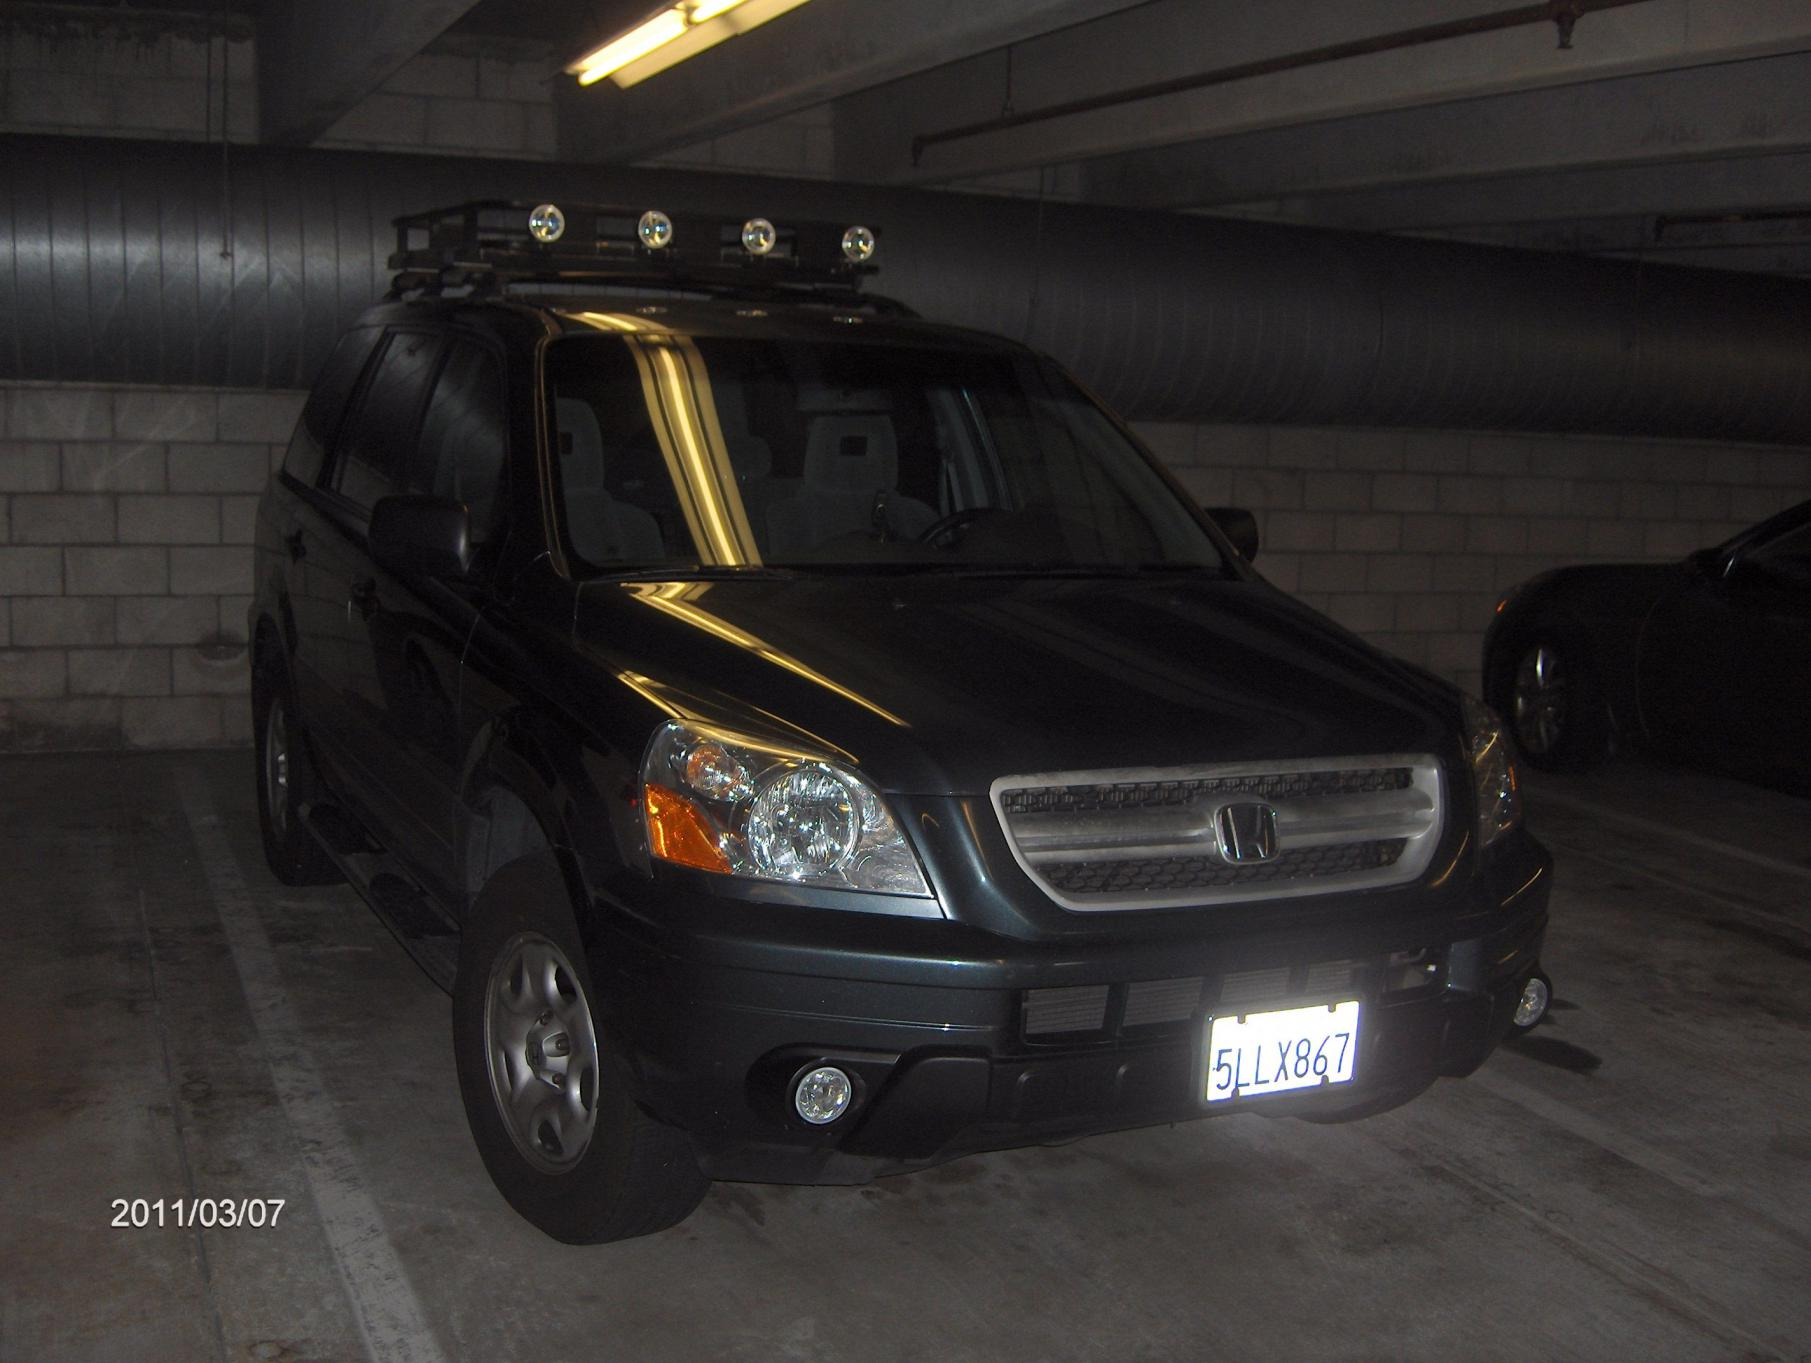 Installing OEM fog lights is a major PITA | Honda Pilot - Honda Pilot ForumsHonda Pilot